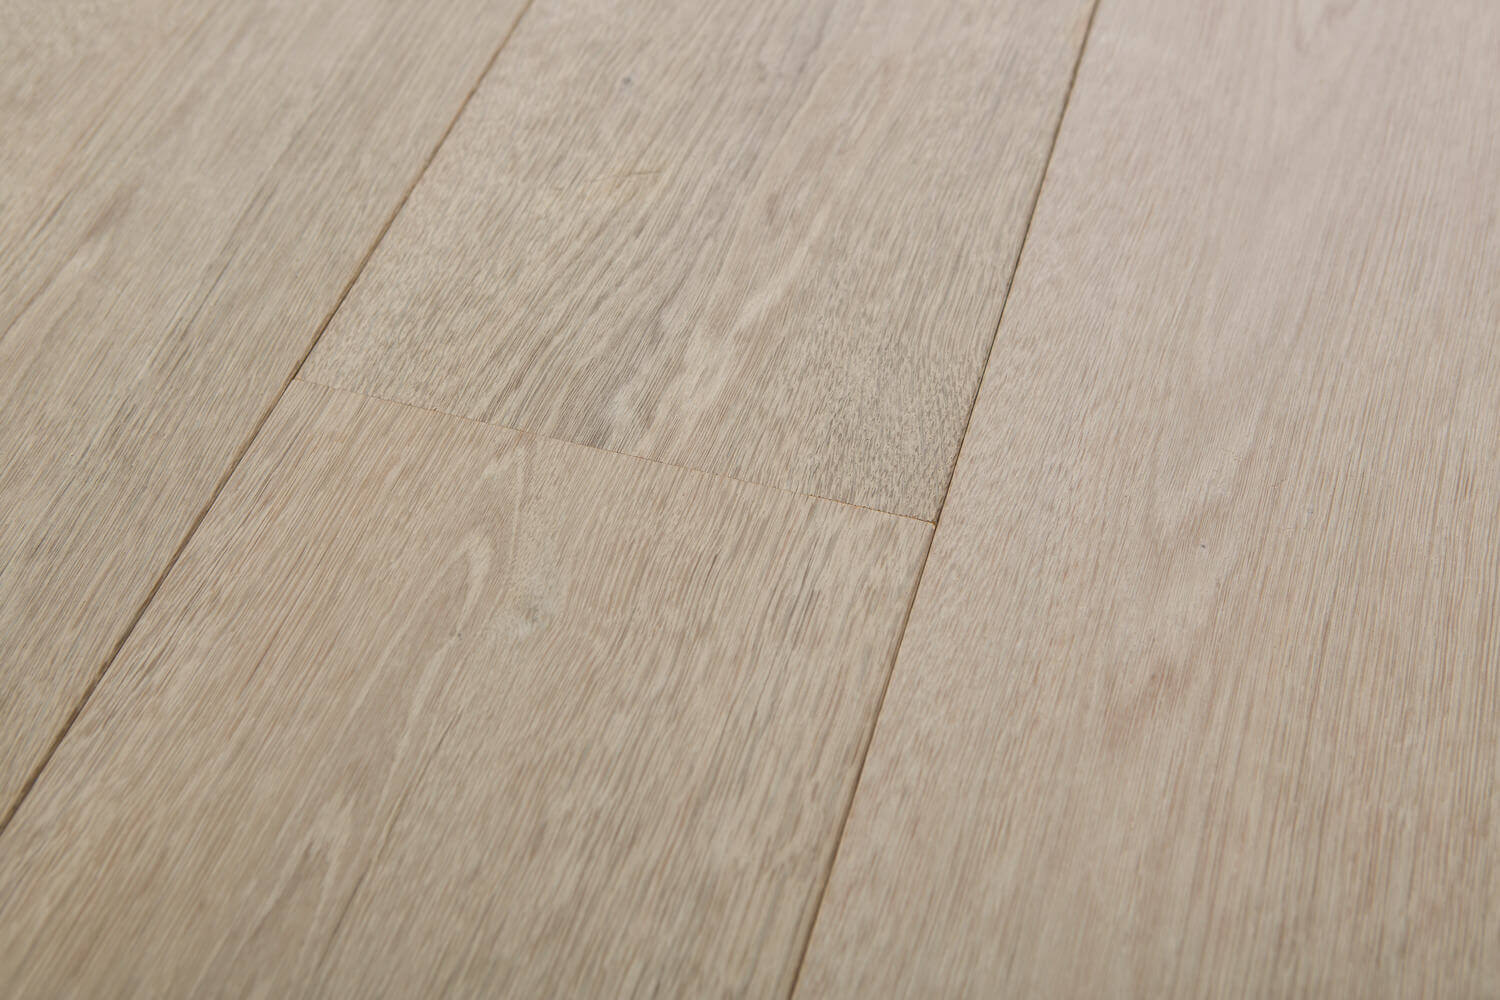 3 Oak Floor Product Aged Planed Distressed